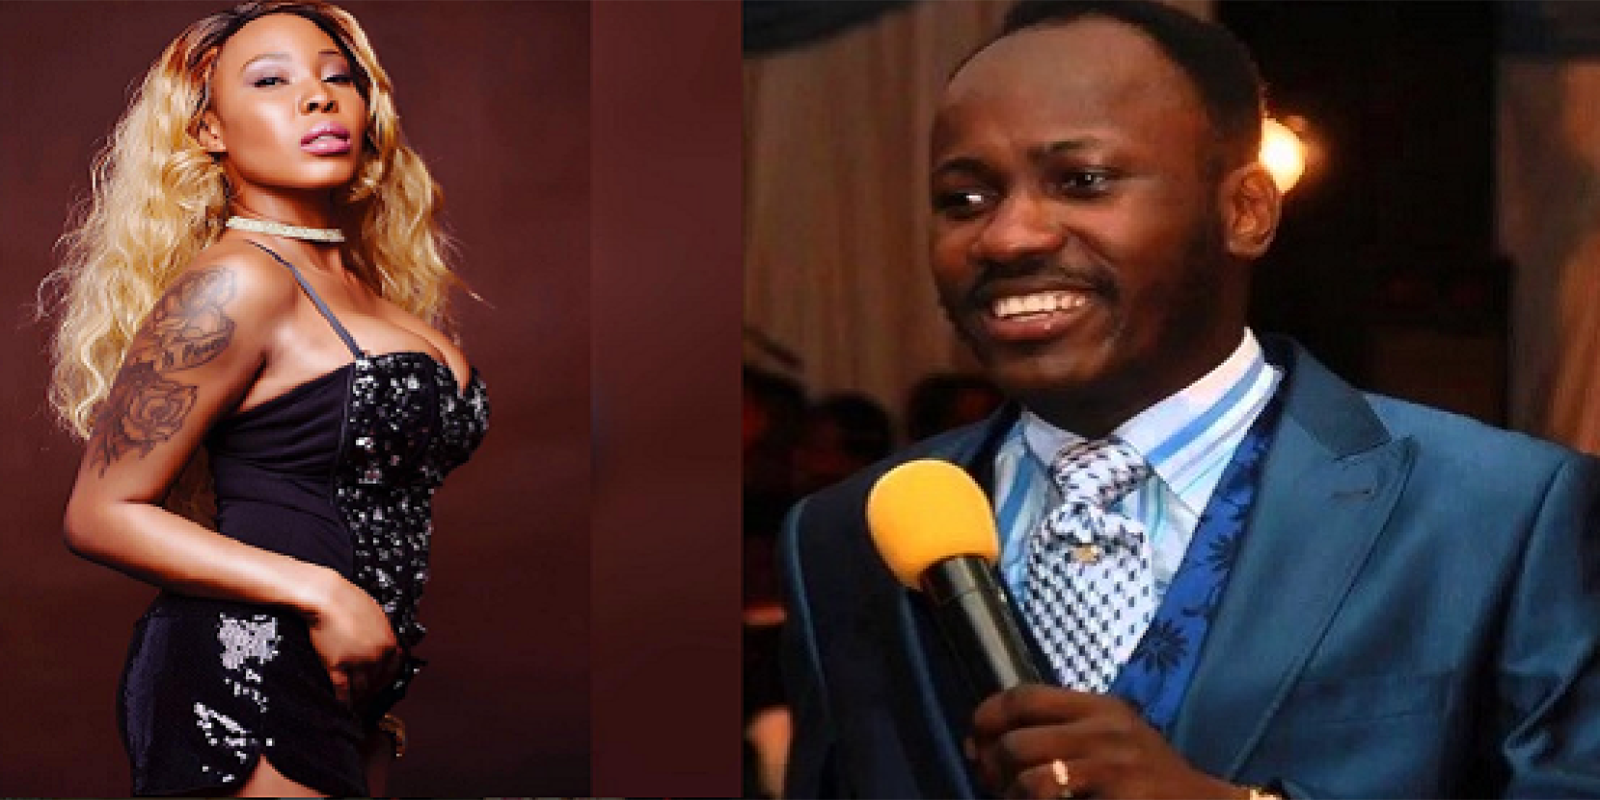 OrijoReporter.com, Apostle Suleman charged to court